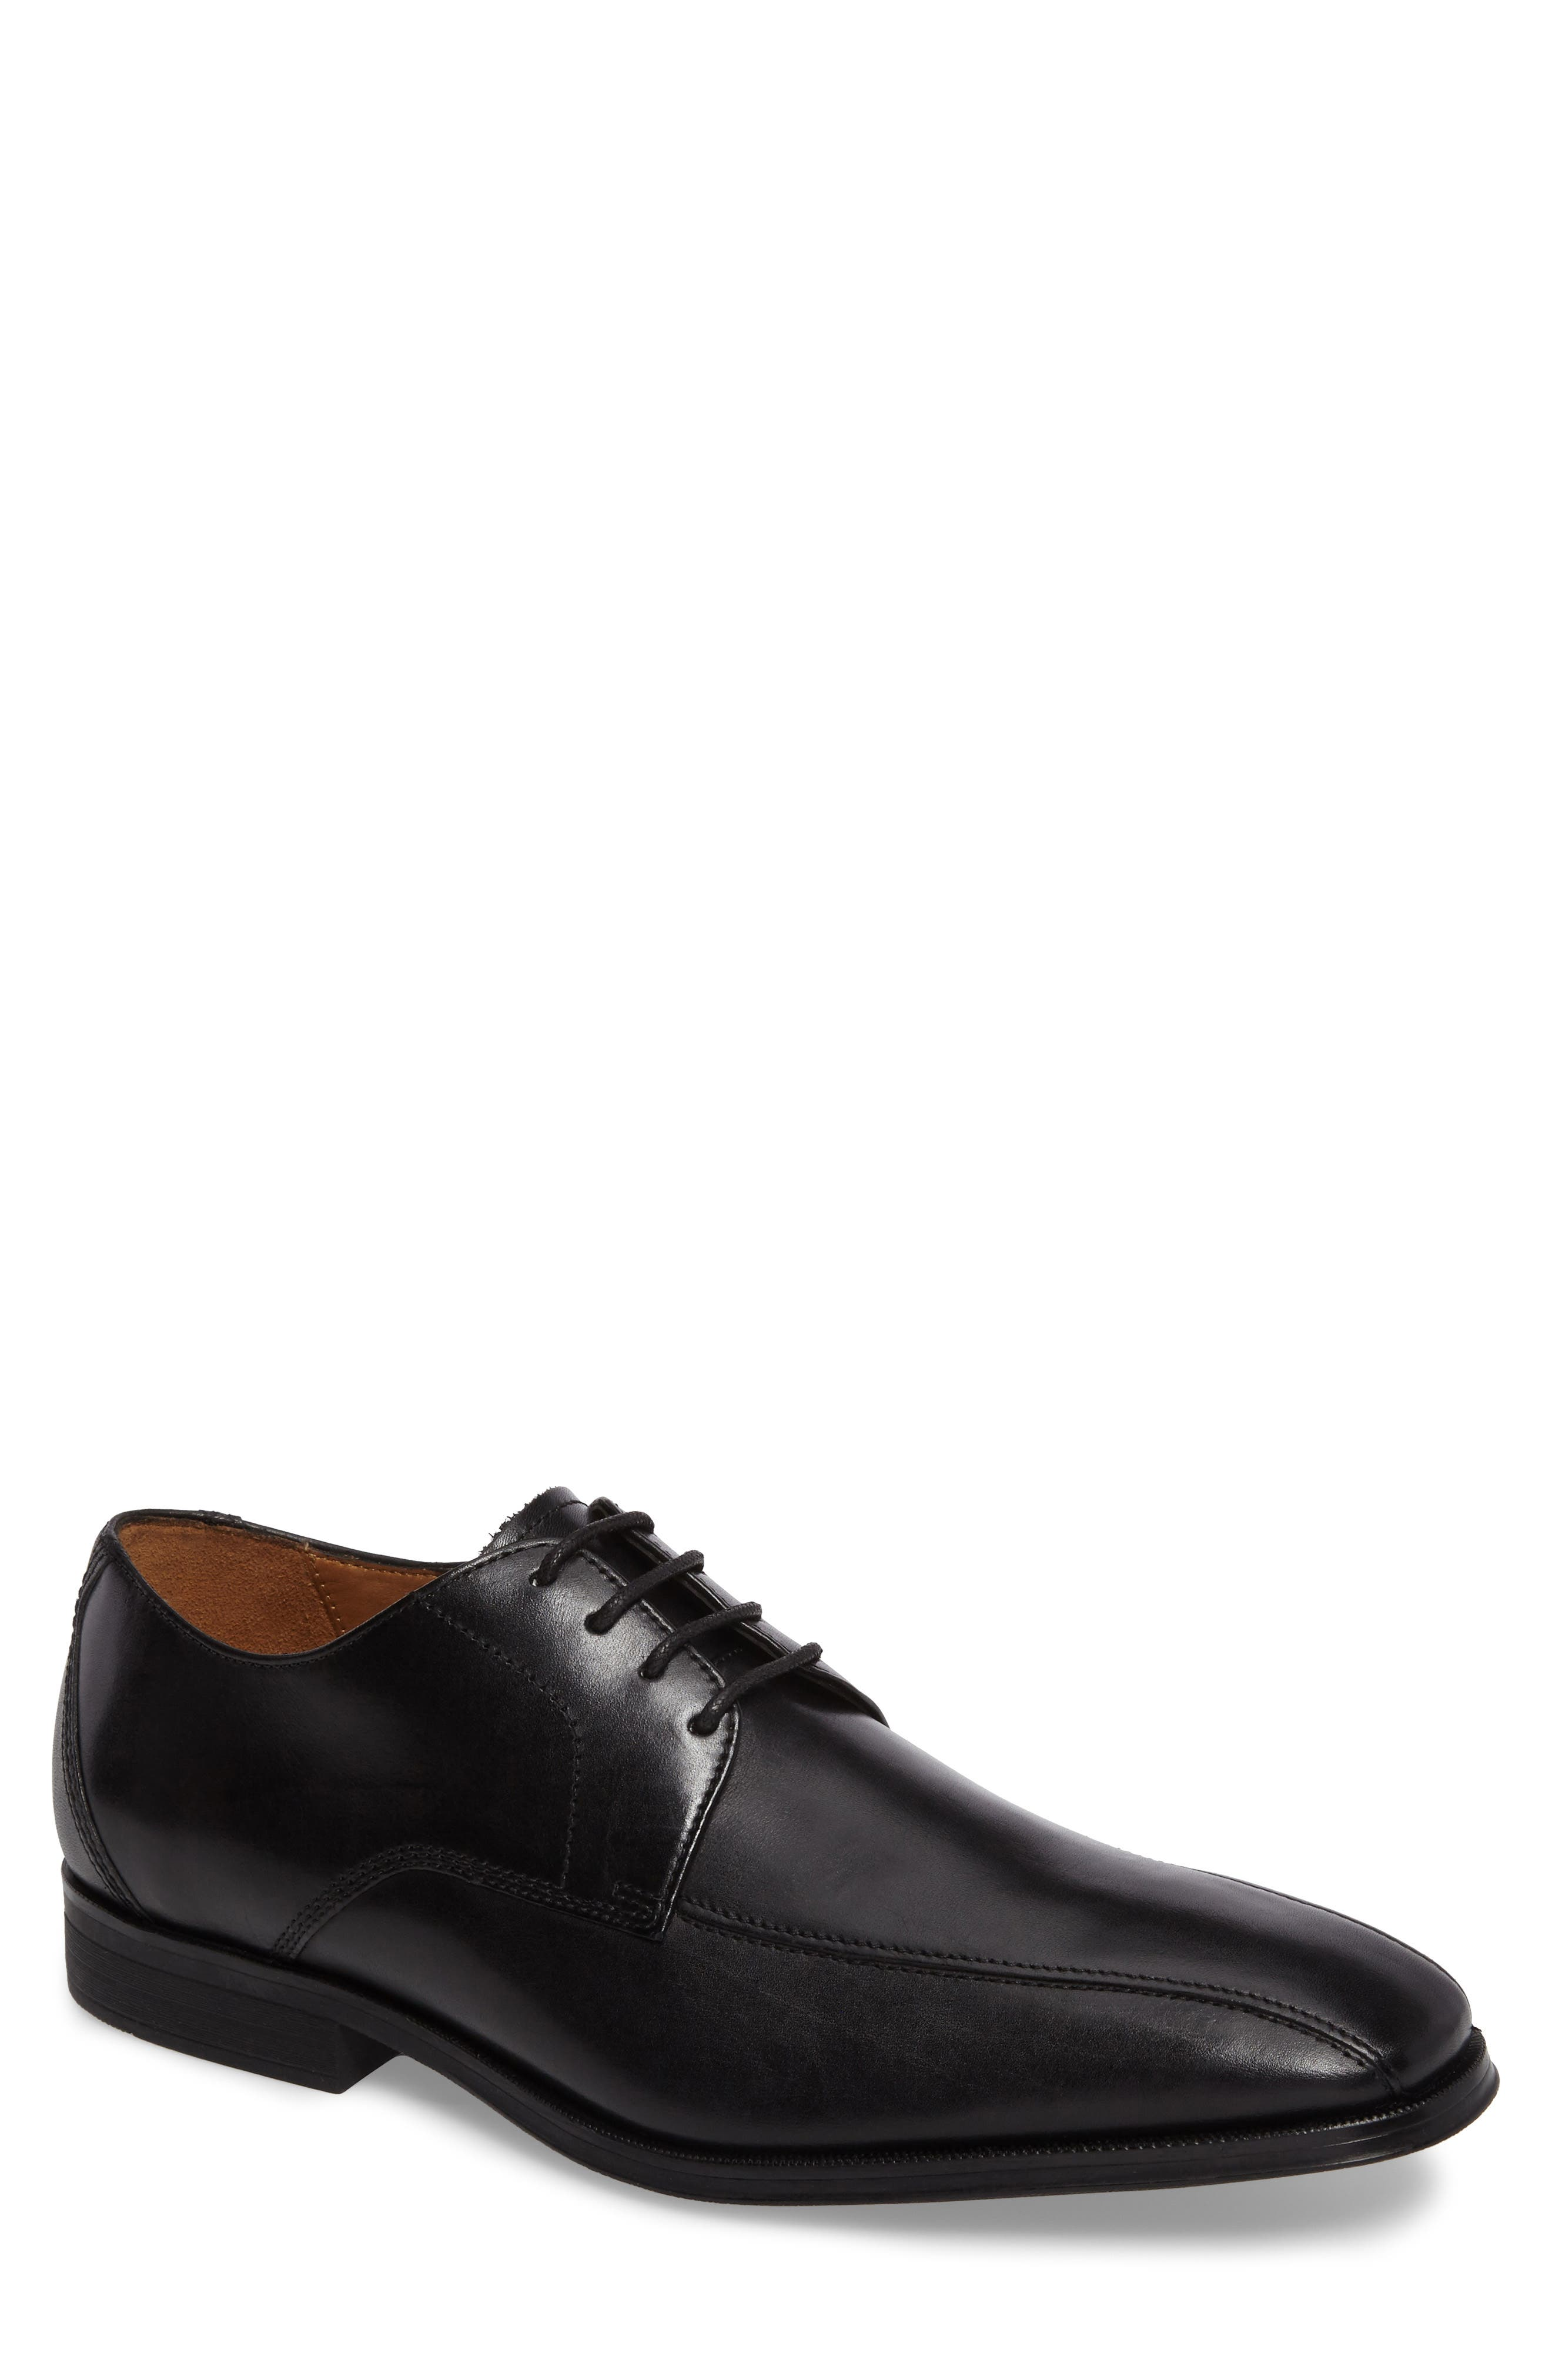 Clarks Gilman Bicycle Toe Derby,                             Main thumbnail 1, color,                             Black Leather